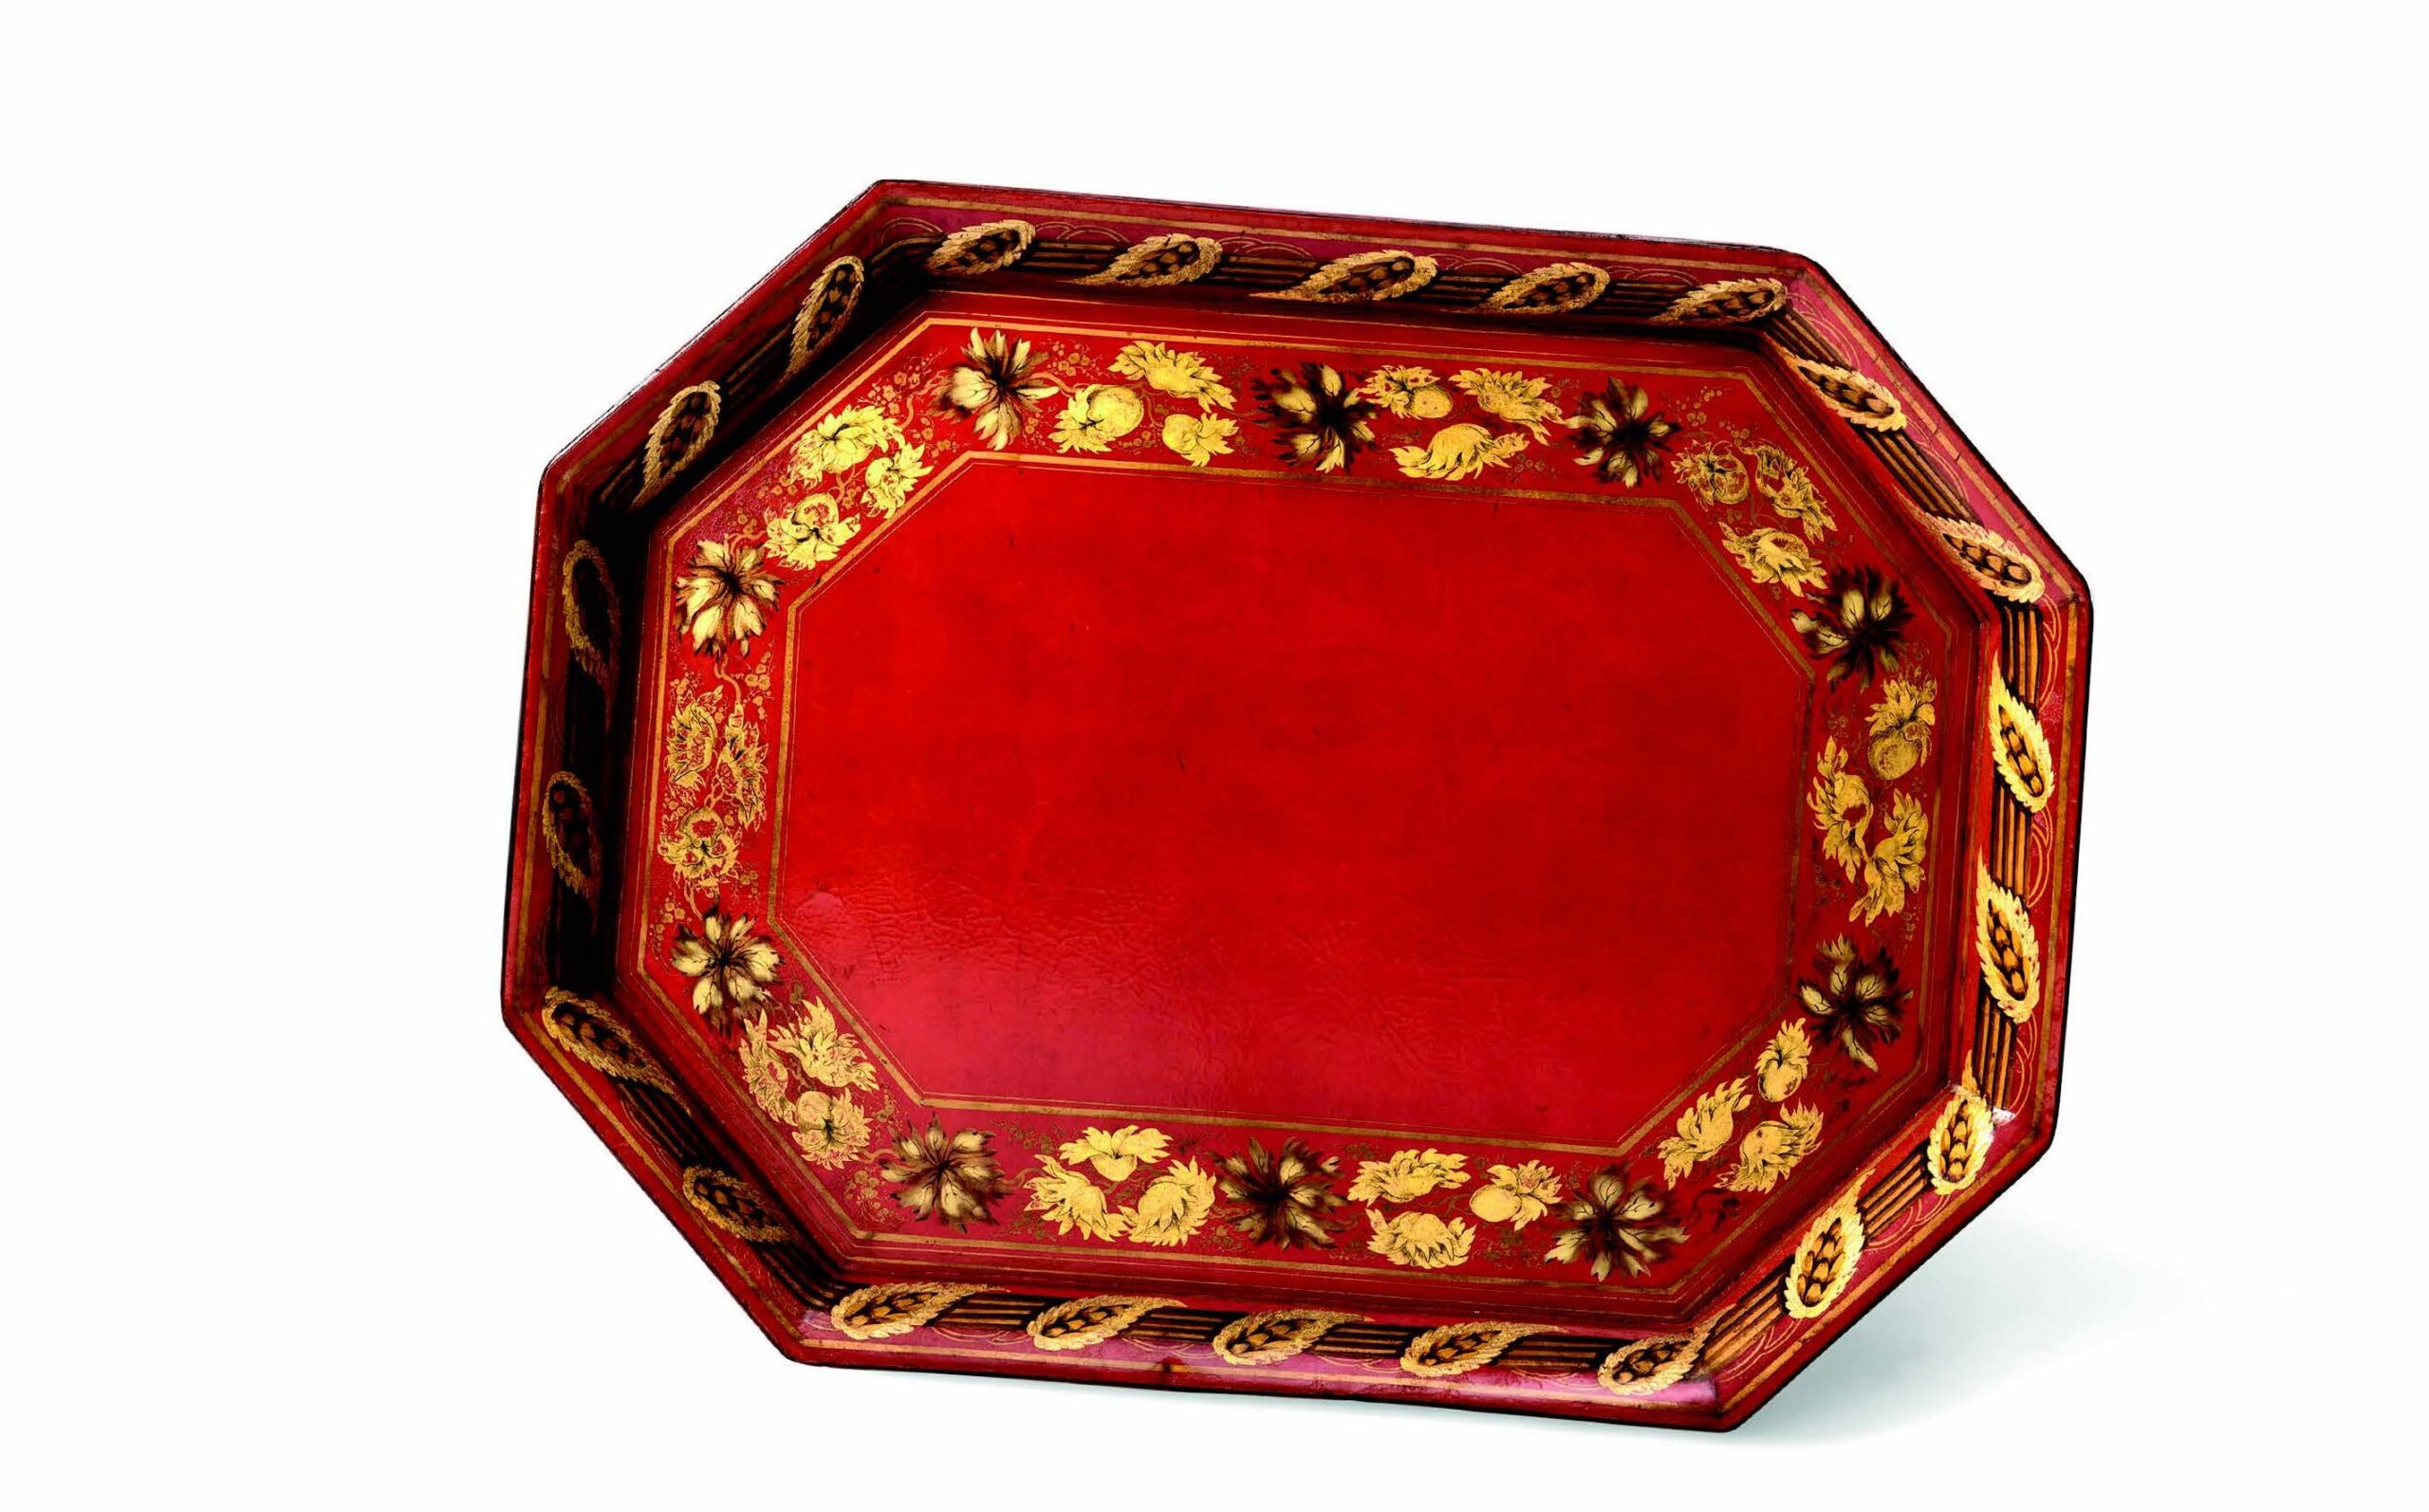 Large Regency period scarlet ground octagonal tray. Attributed to Henry Clay